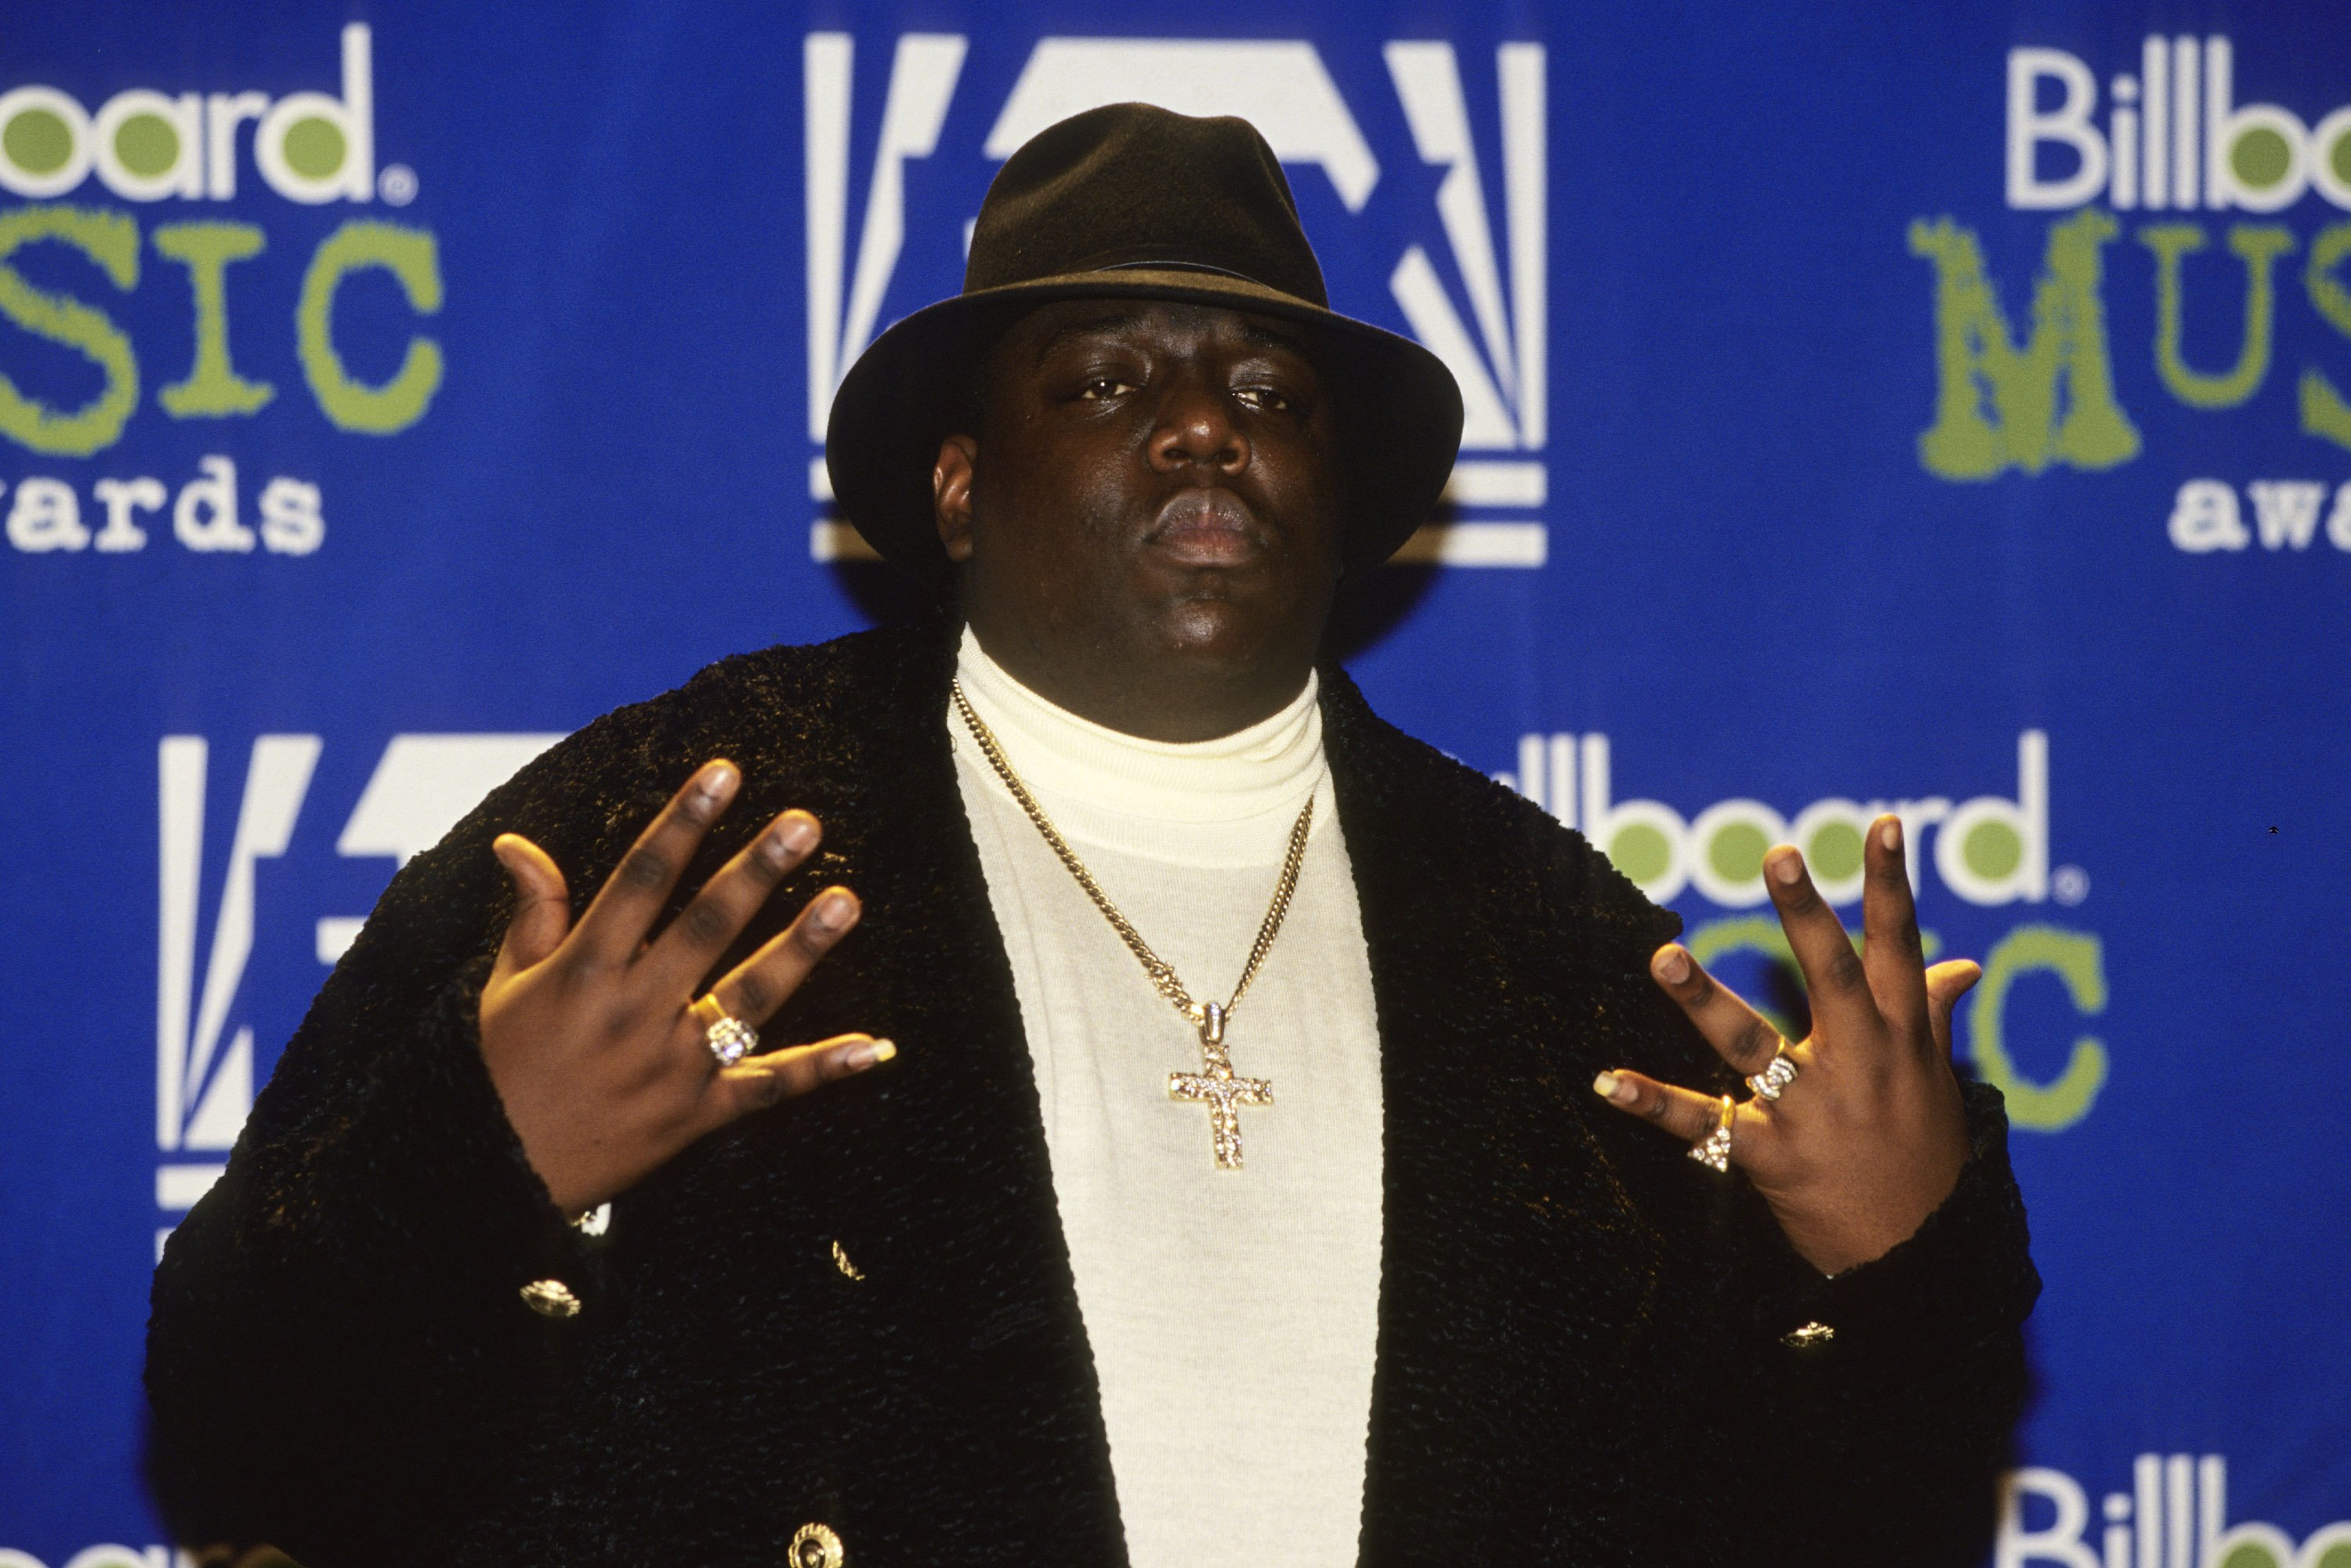 Notorious B.I.G. at the 1995 Billboard Music Awards in New York on December 6, 1996.   Photo: Getty Images